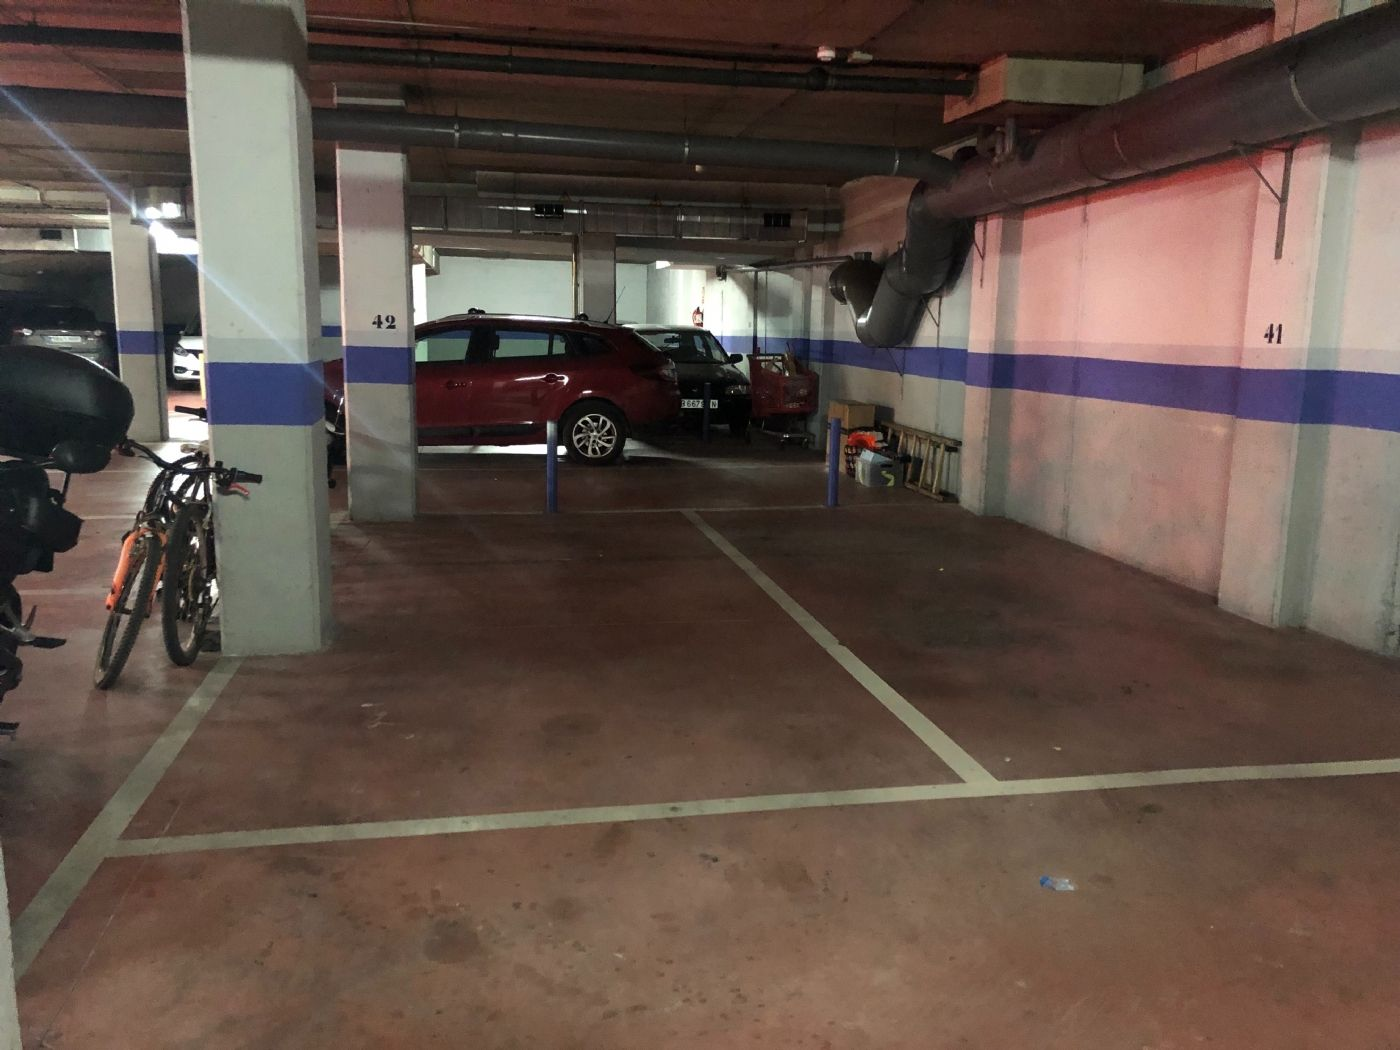 Car parking in Carrer maria ribas, 9. Plaza aparcamiento vehículo grande y moto